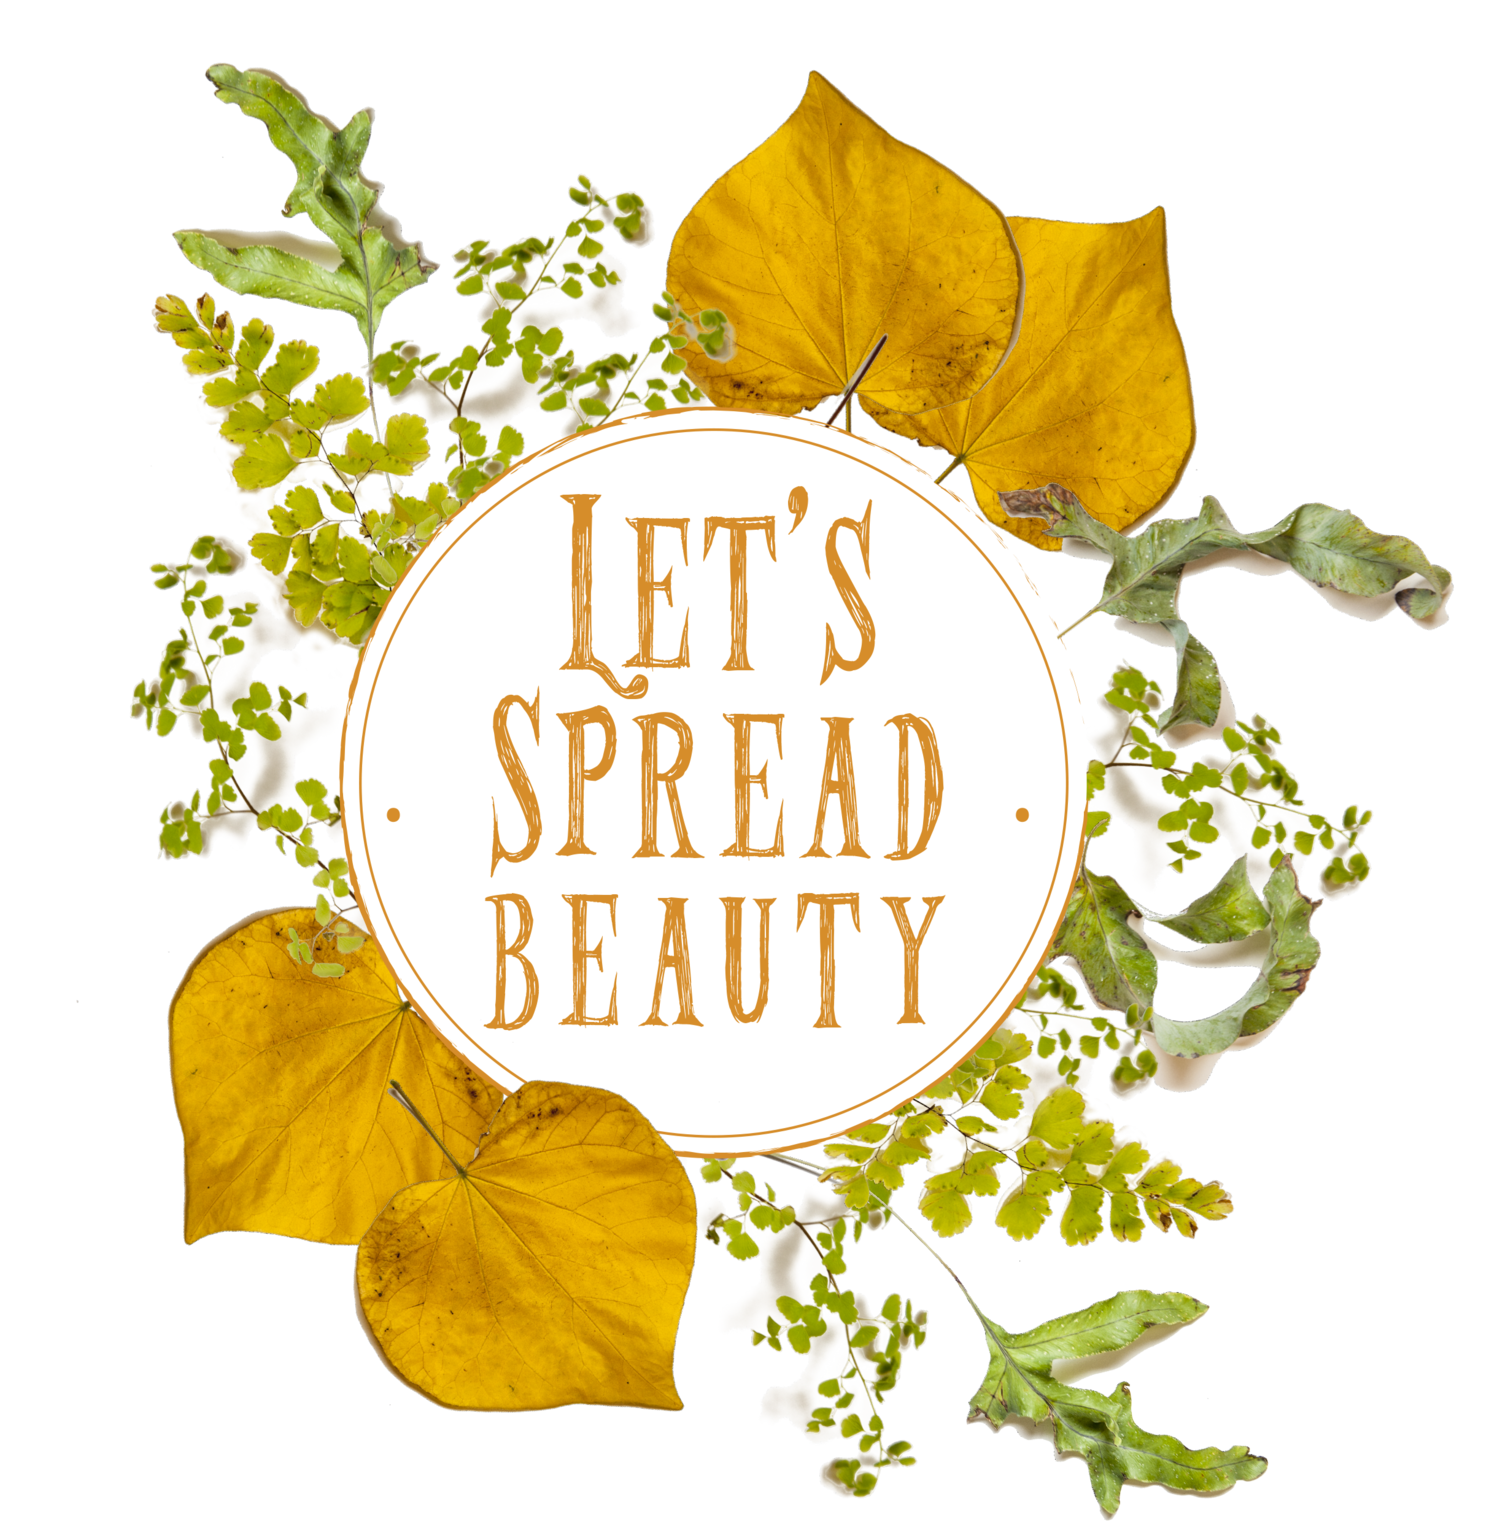 Let's Spread Beauty